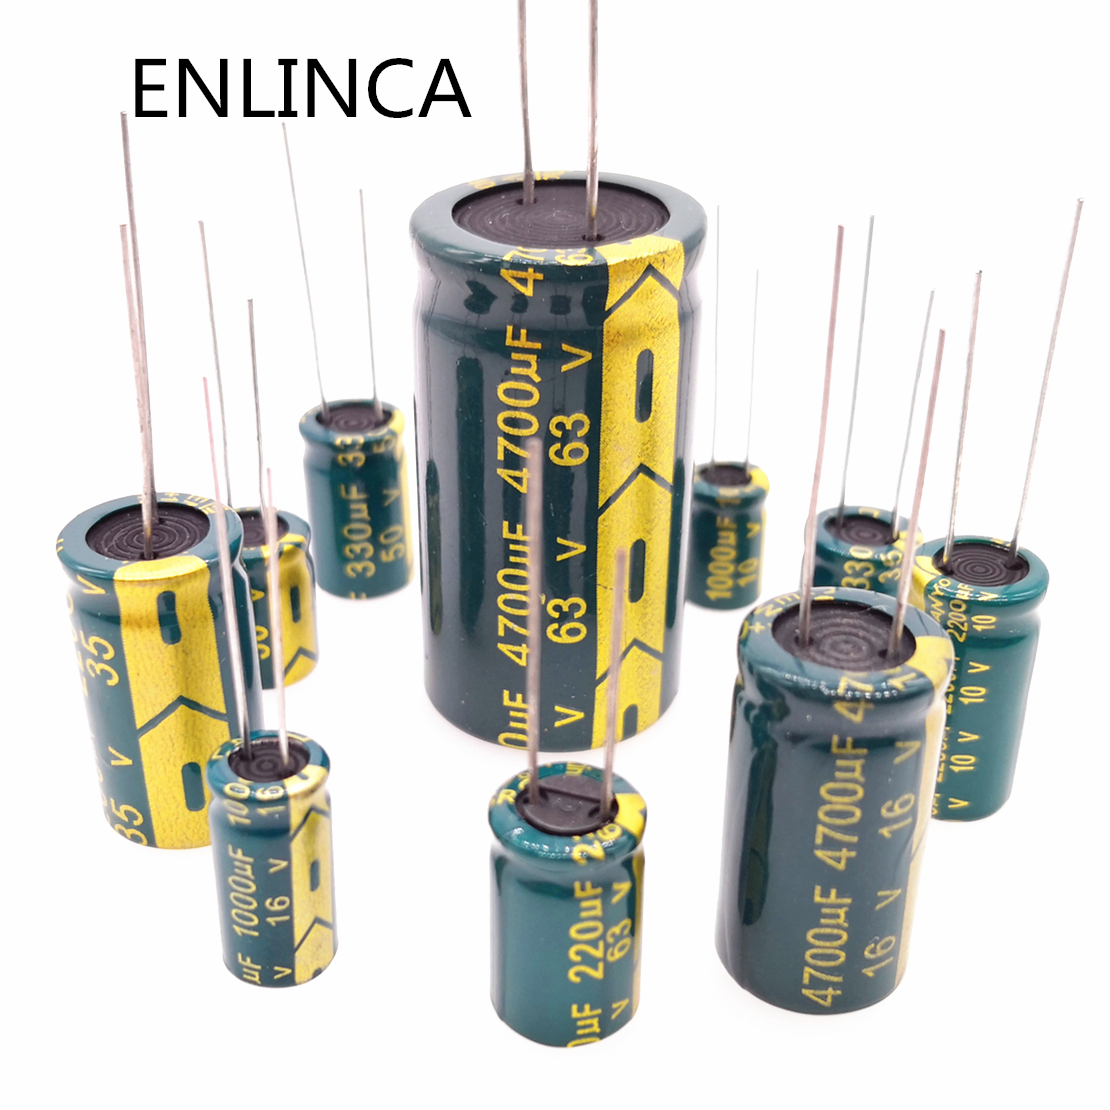 5-20pcs 10V 16V 25V 35V 50V Low ESR High Frequency Aluminum Capacitor 47UF 100UF 220UF 330UF 470UF 680UF 1000UF 1500UF 2200UF